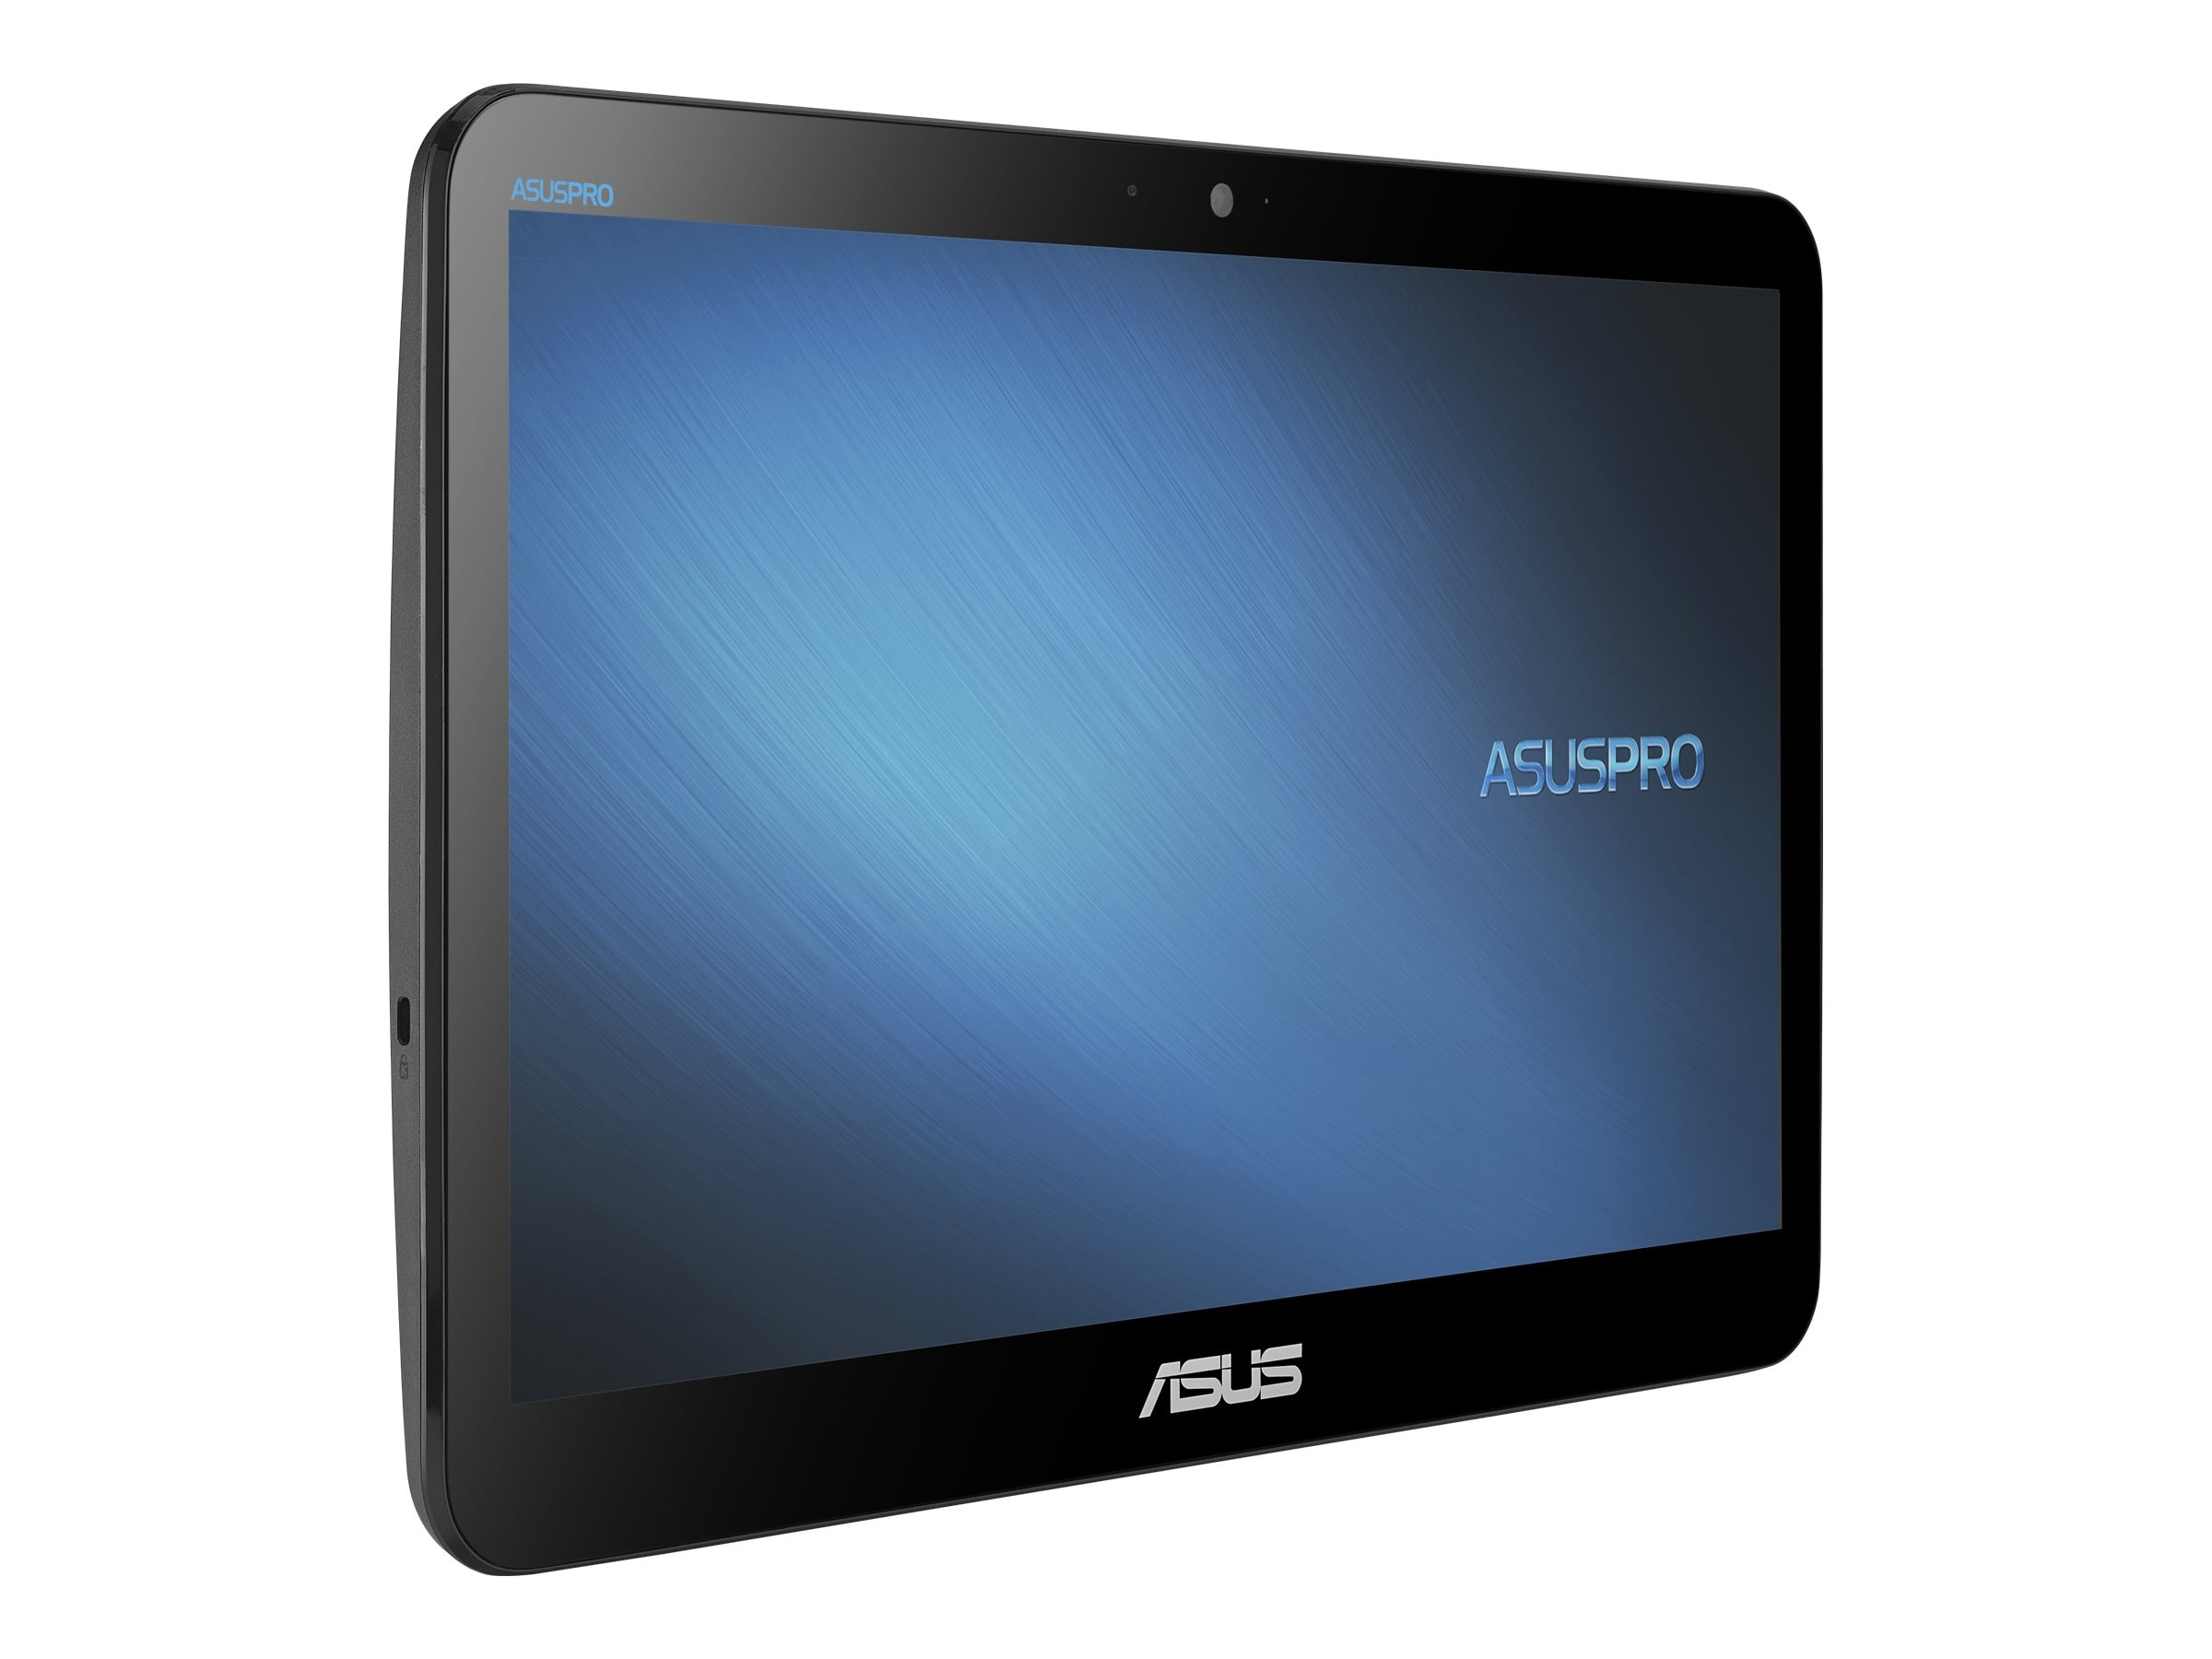 Asus A4110-XS01 Image 2